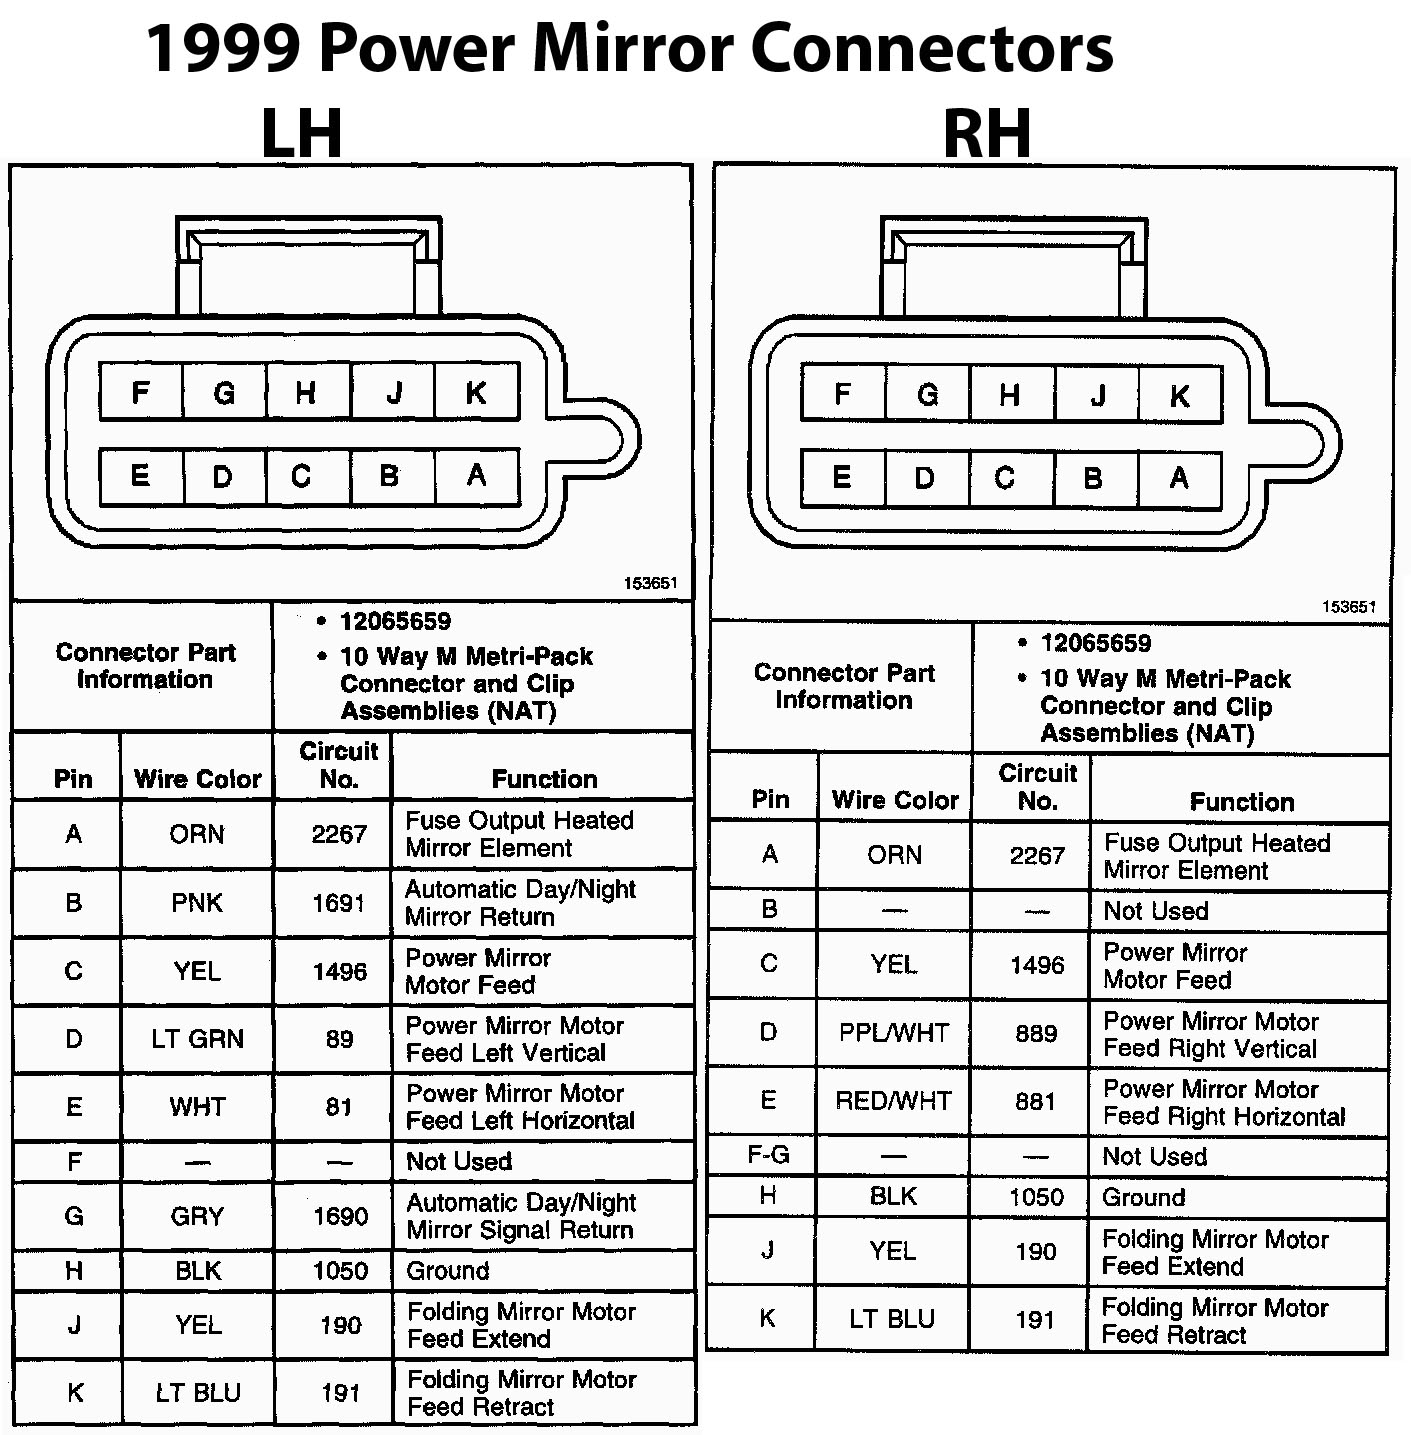 1996 bmw z3 wiring diagram parts of a blank horse 02 power mirrors on 97 help? - blazer forum chevy forums